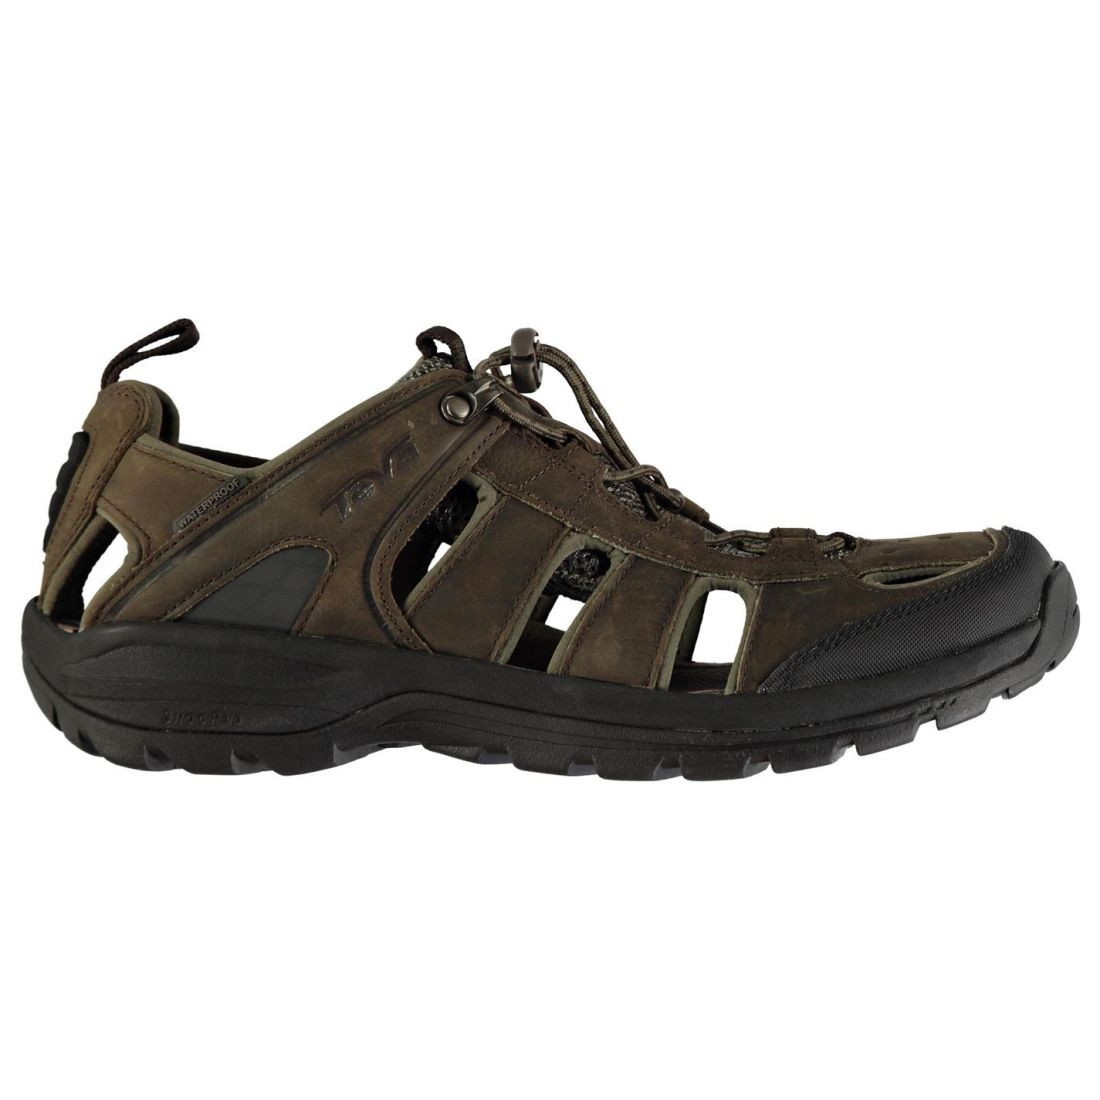 50445c662cbb Image is loading Teva-Mens-Kimtah-Leather-Walking-Sandals-Hiking-Trekking-